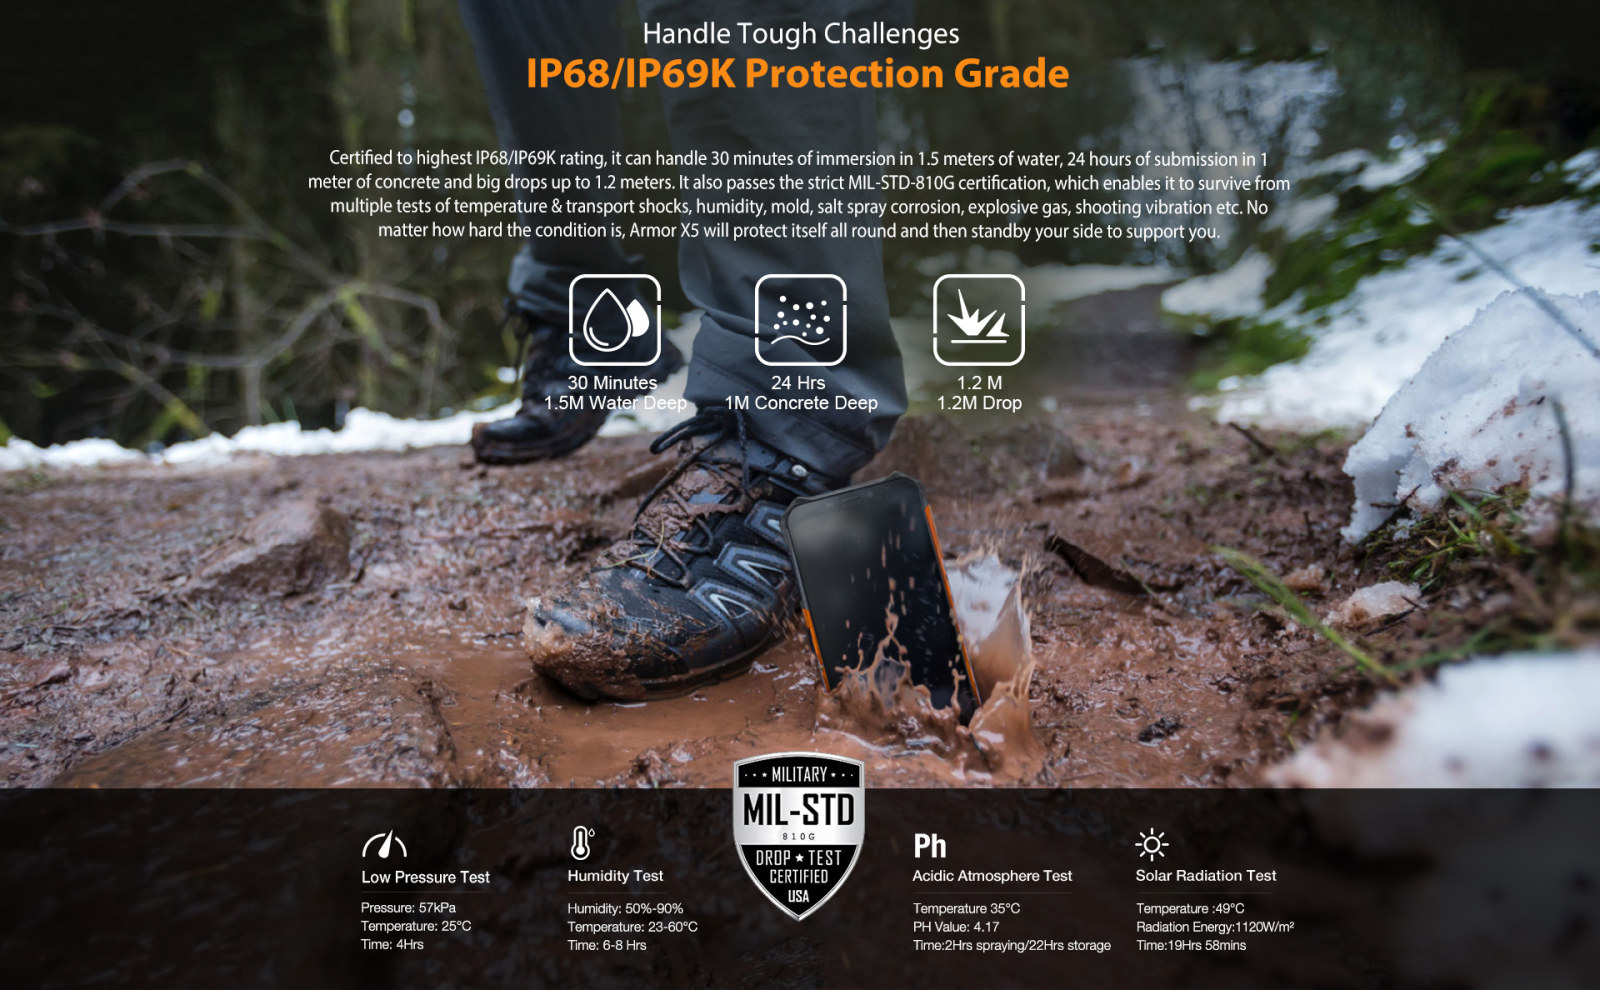 rugged and sealed IP68 - IP69K rating